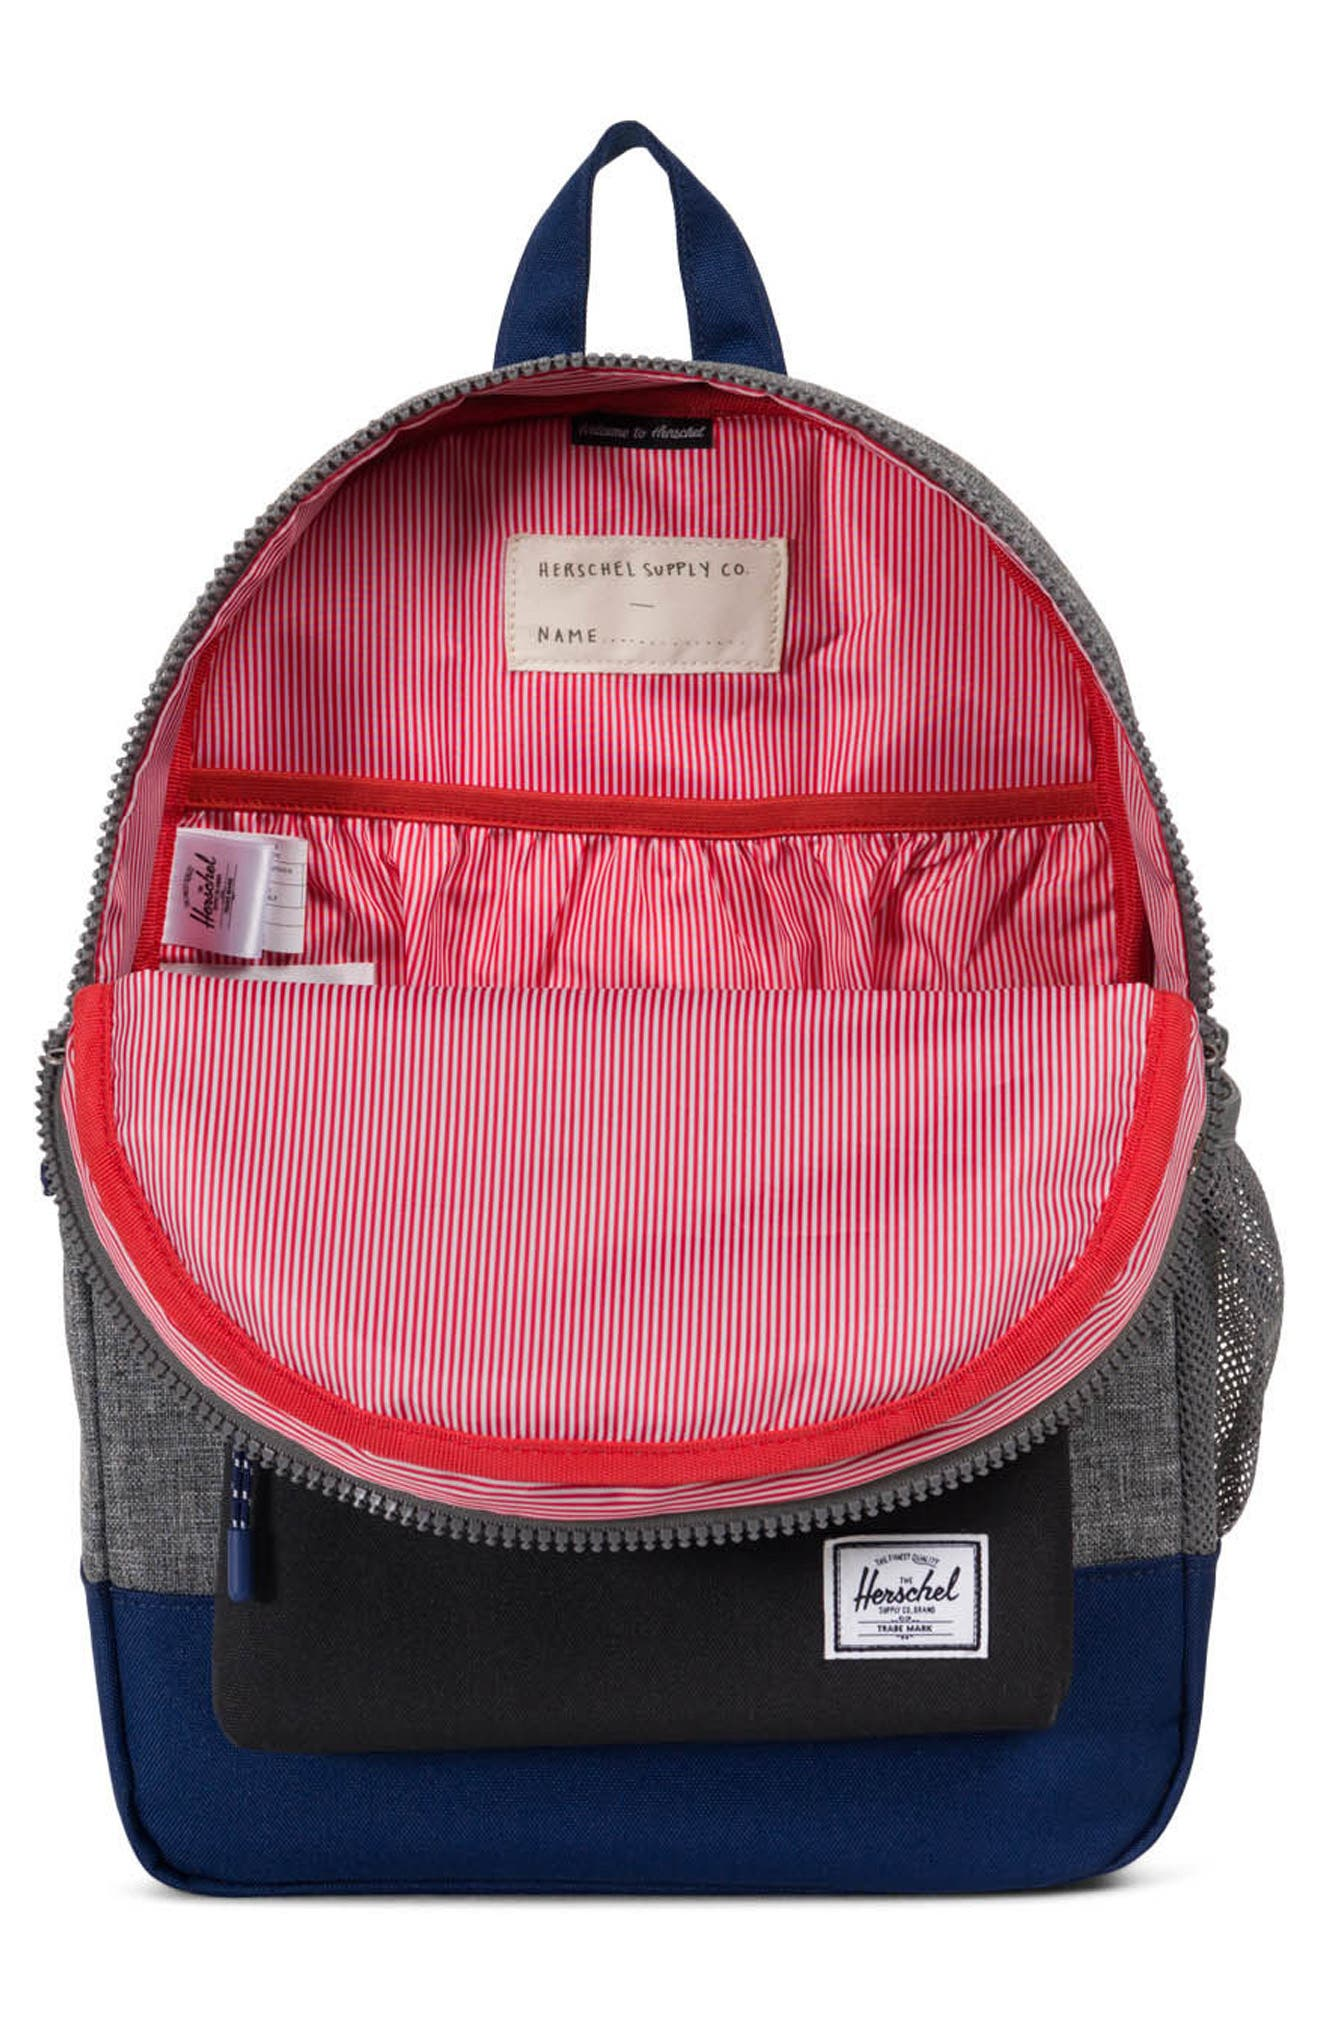 Heritage Backpack,                             Alternate thumbnail 3, color,                             001